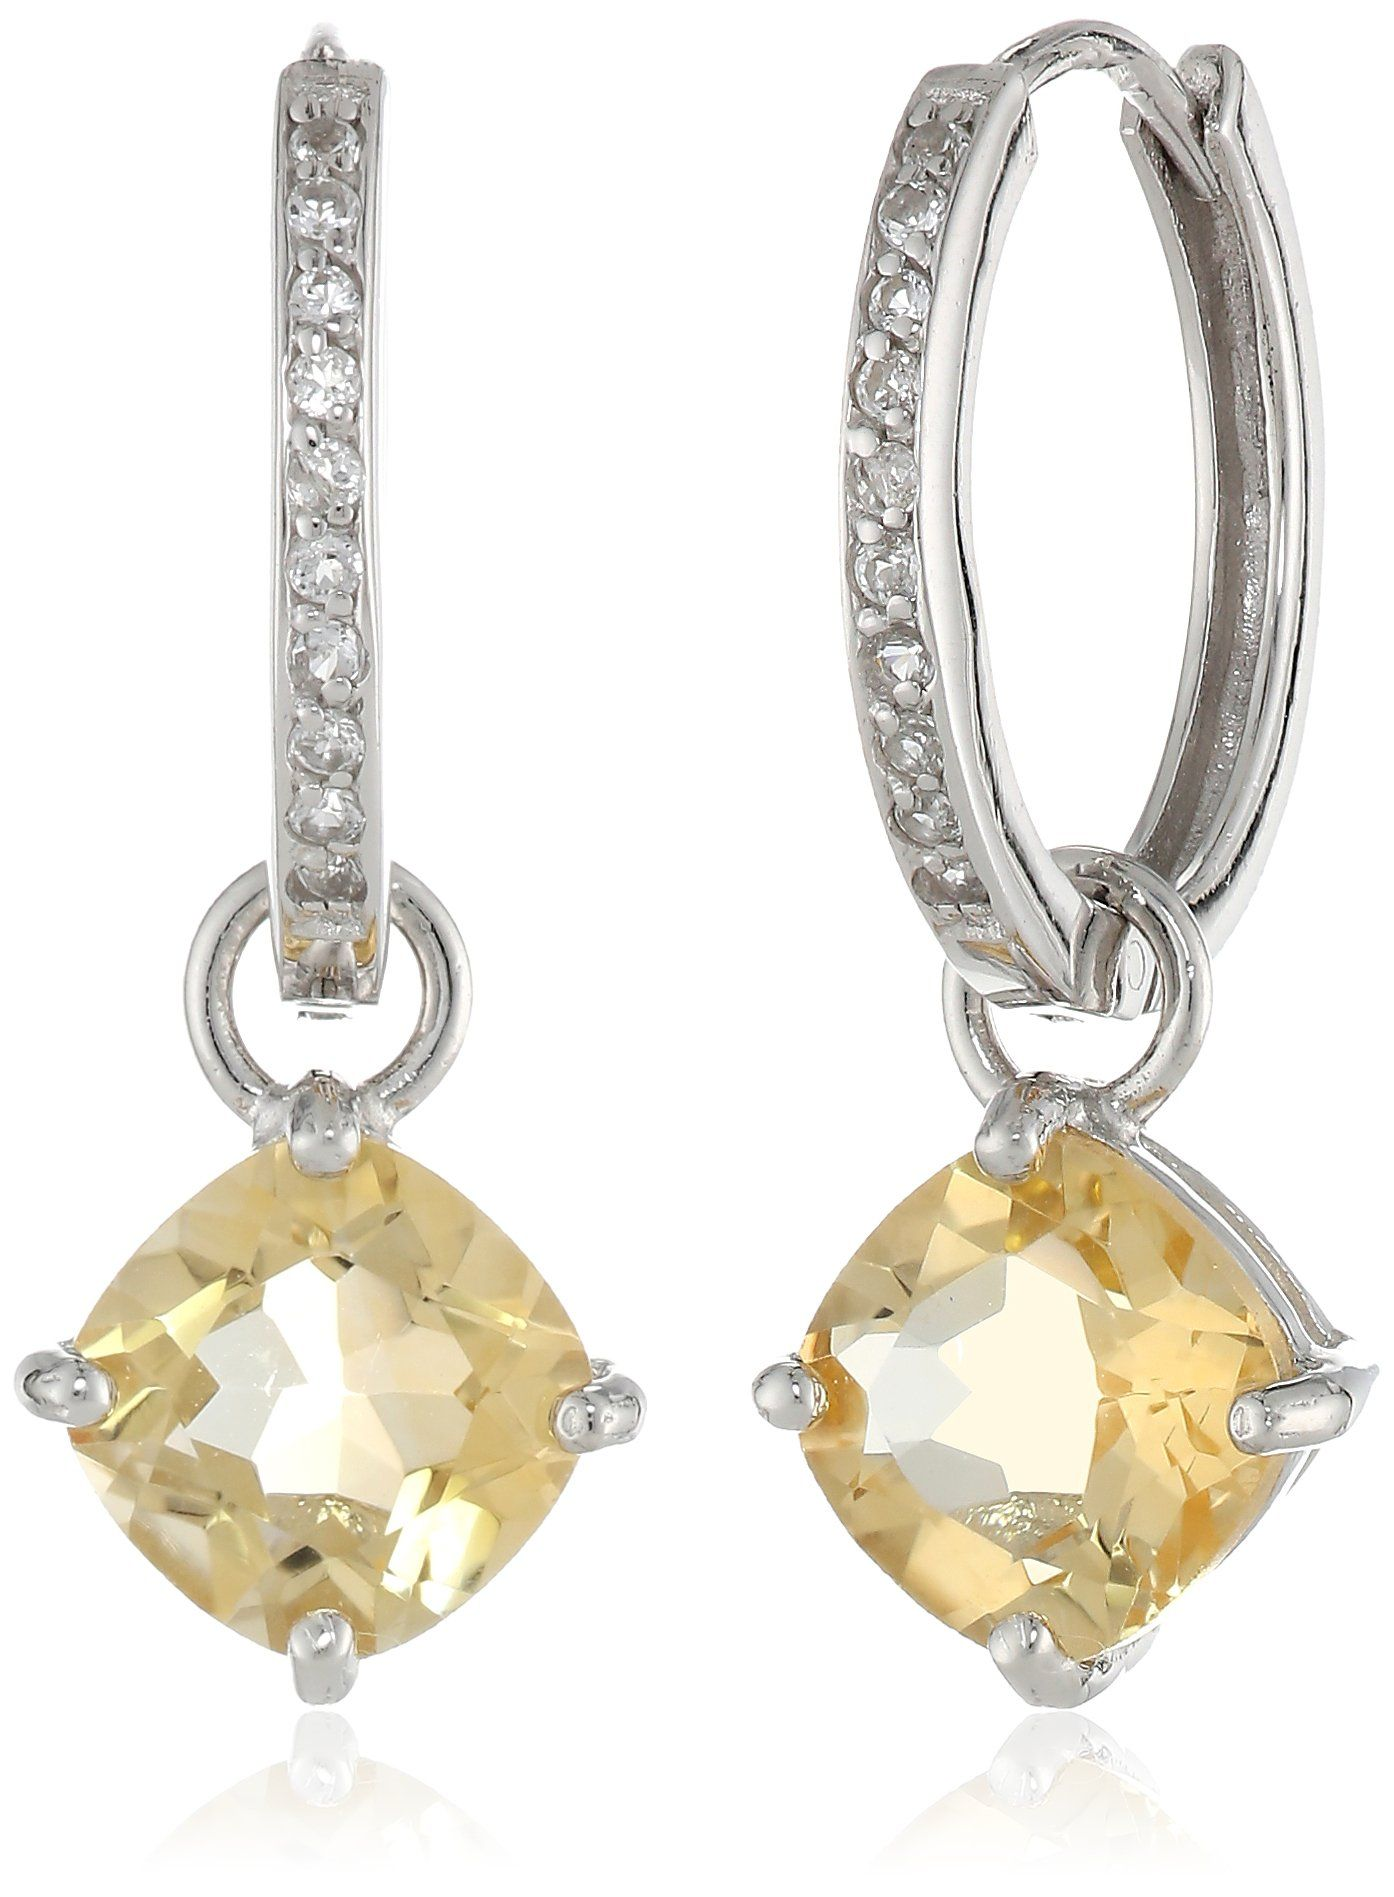 $39 41 at Amazon Sterling Silver Citrine Earrings with thanks